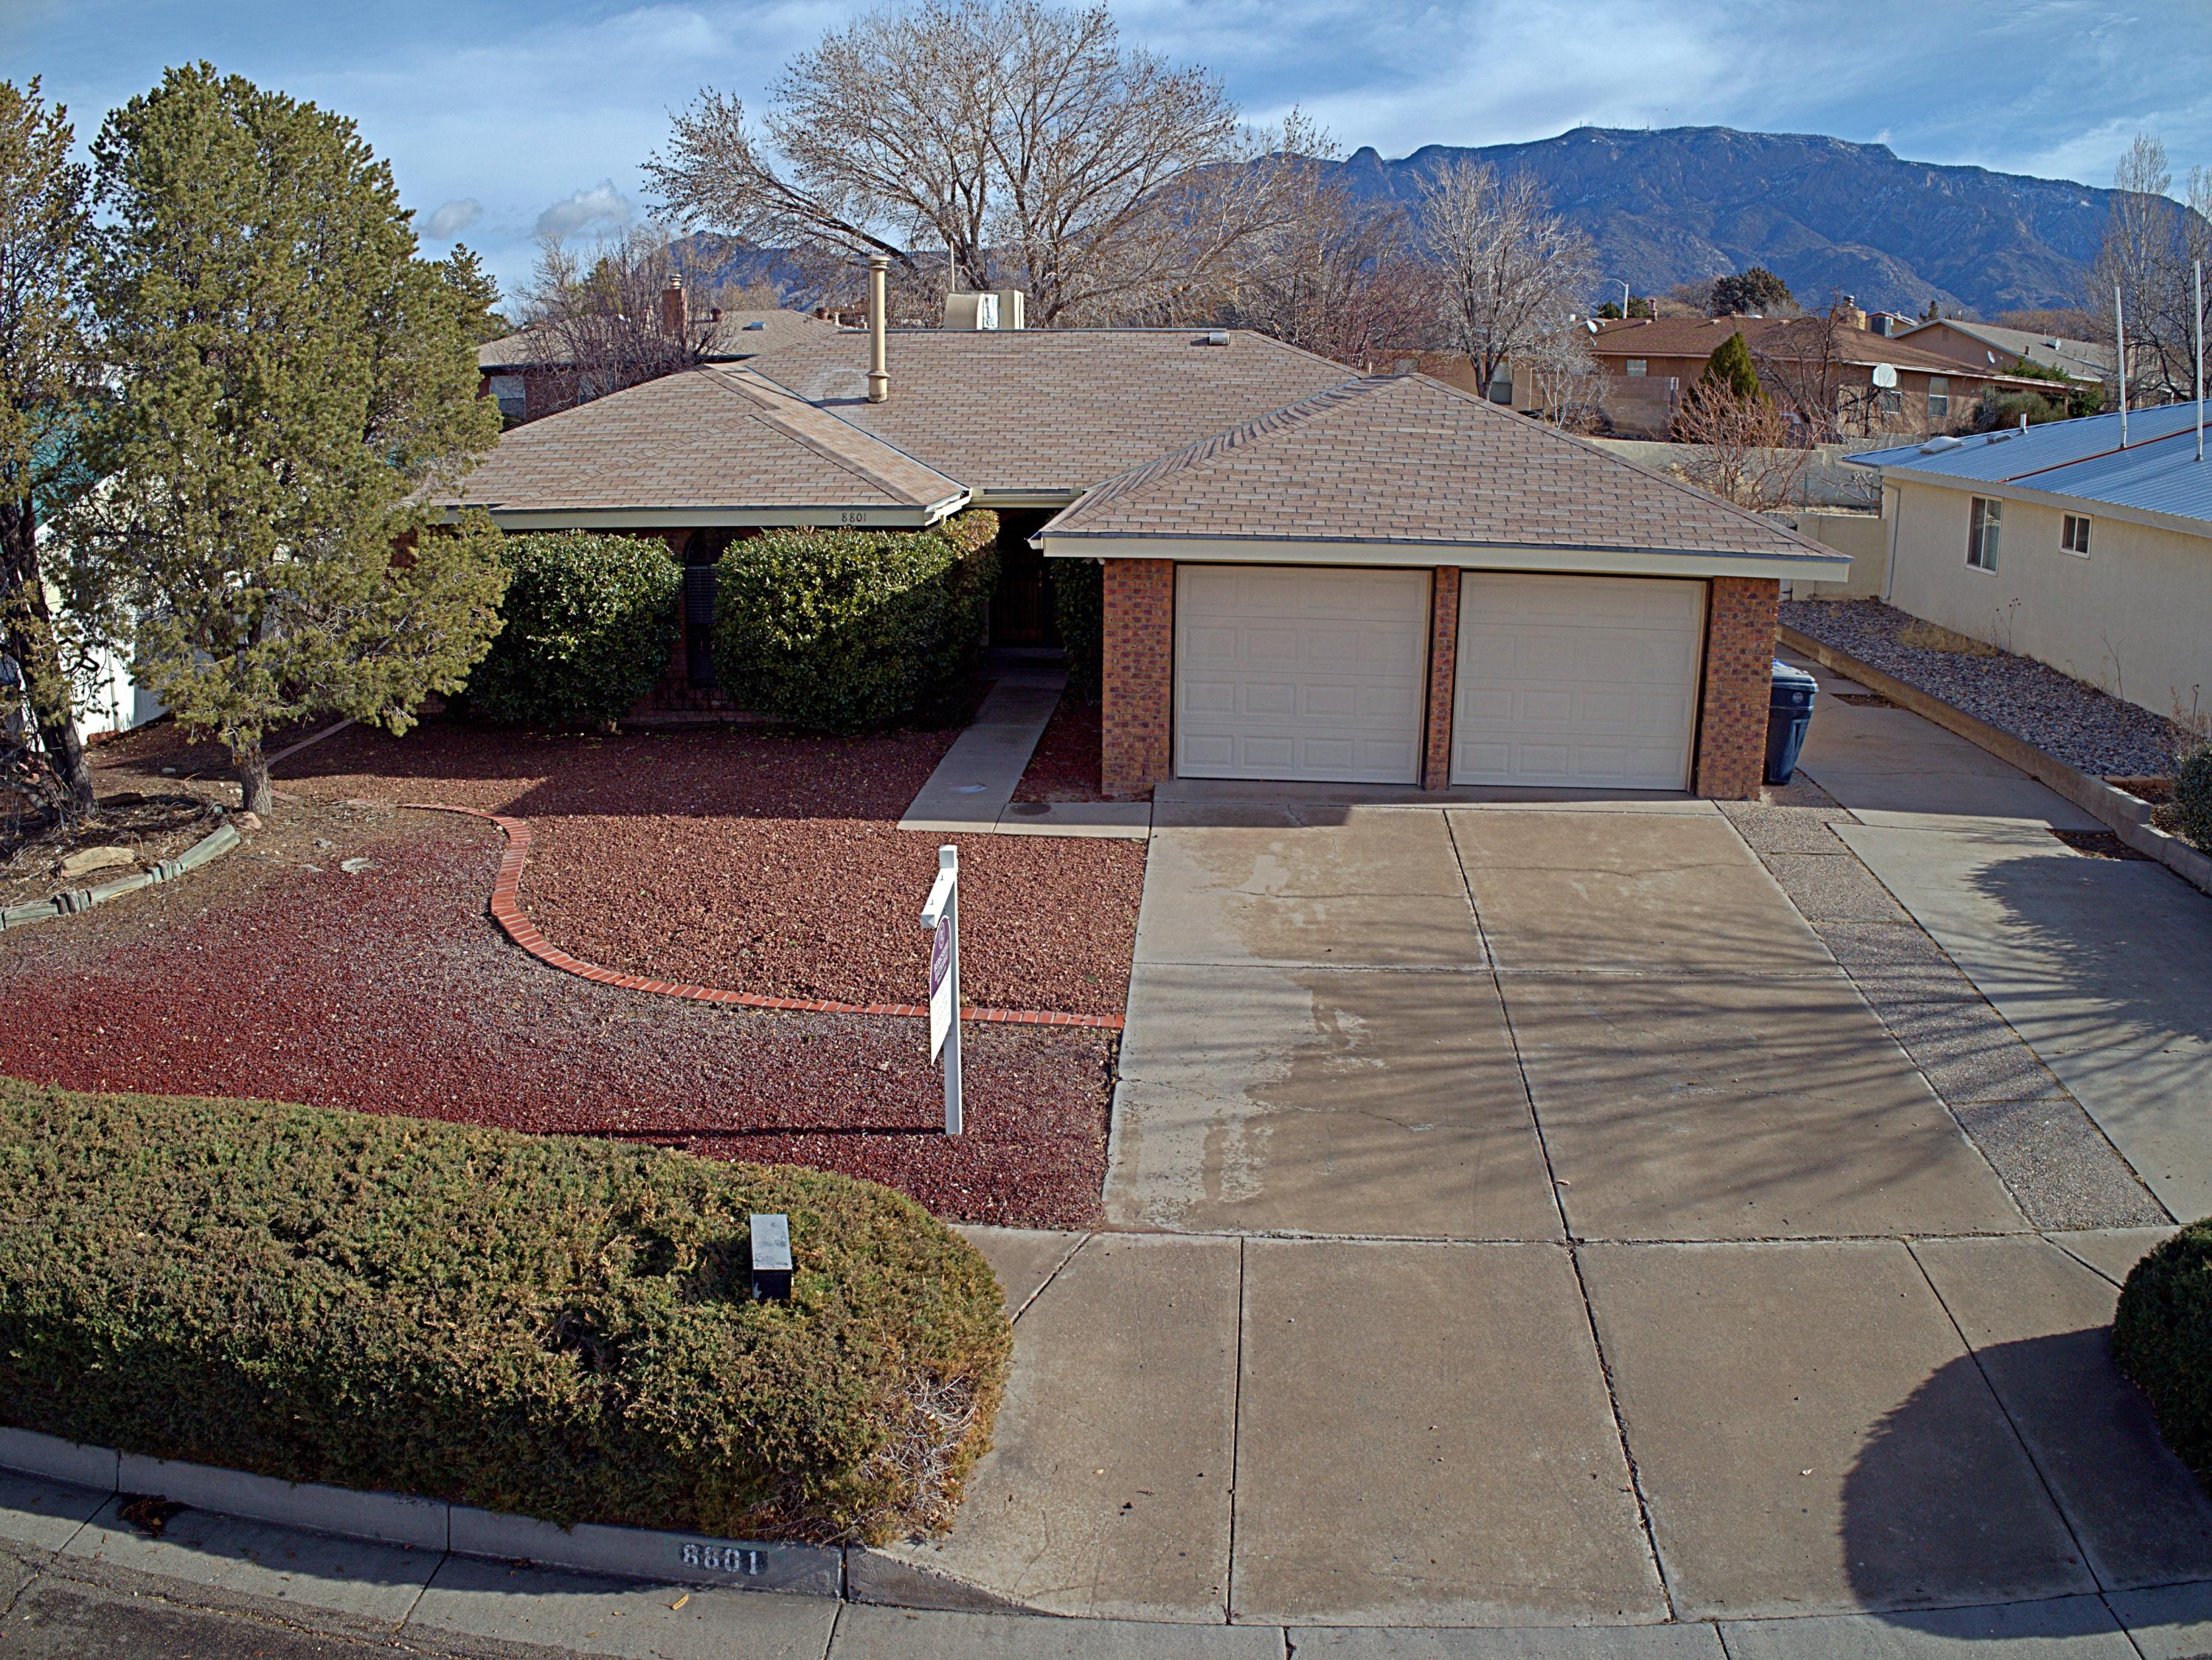 8801 Rough Rider Road, Albuquerque NM 87109